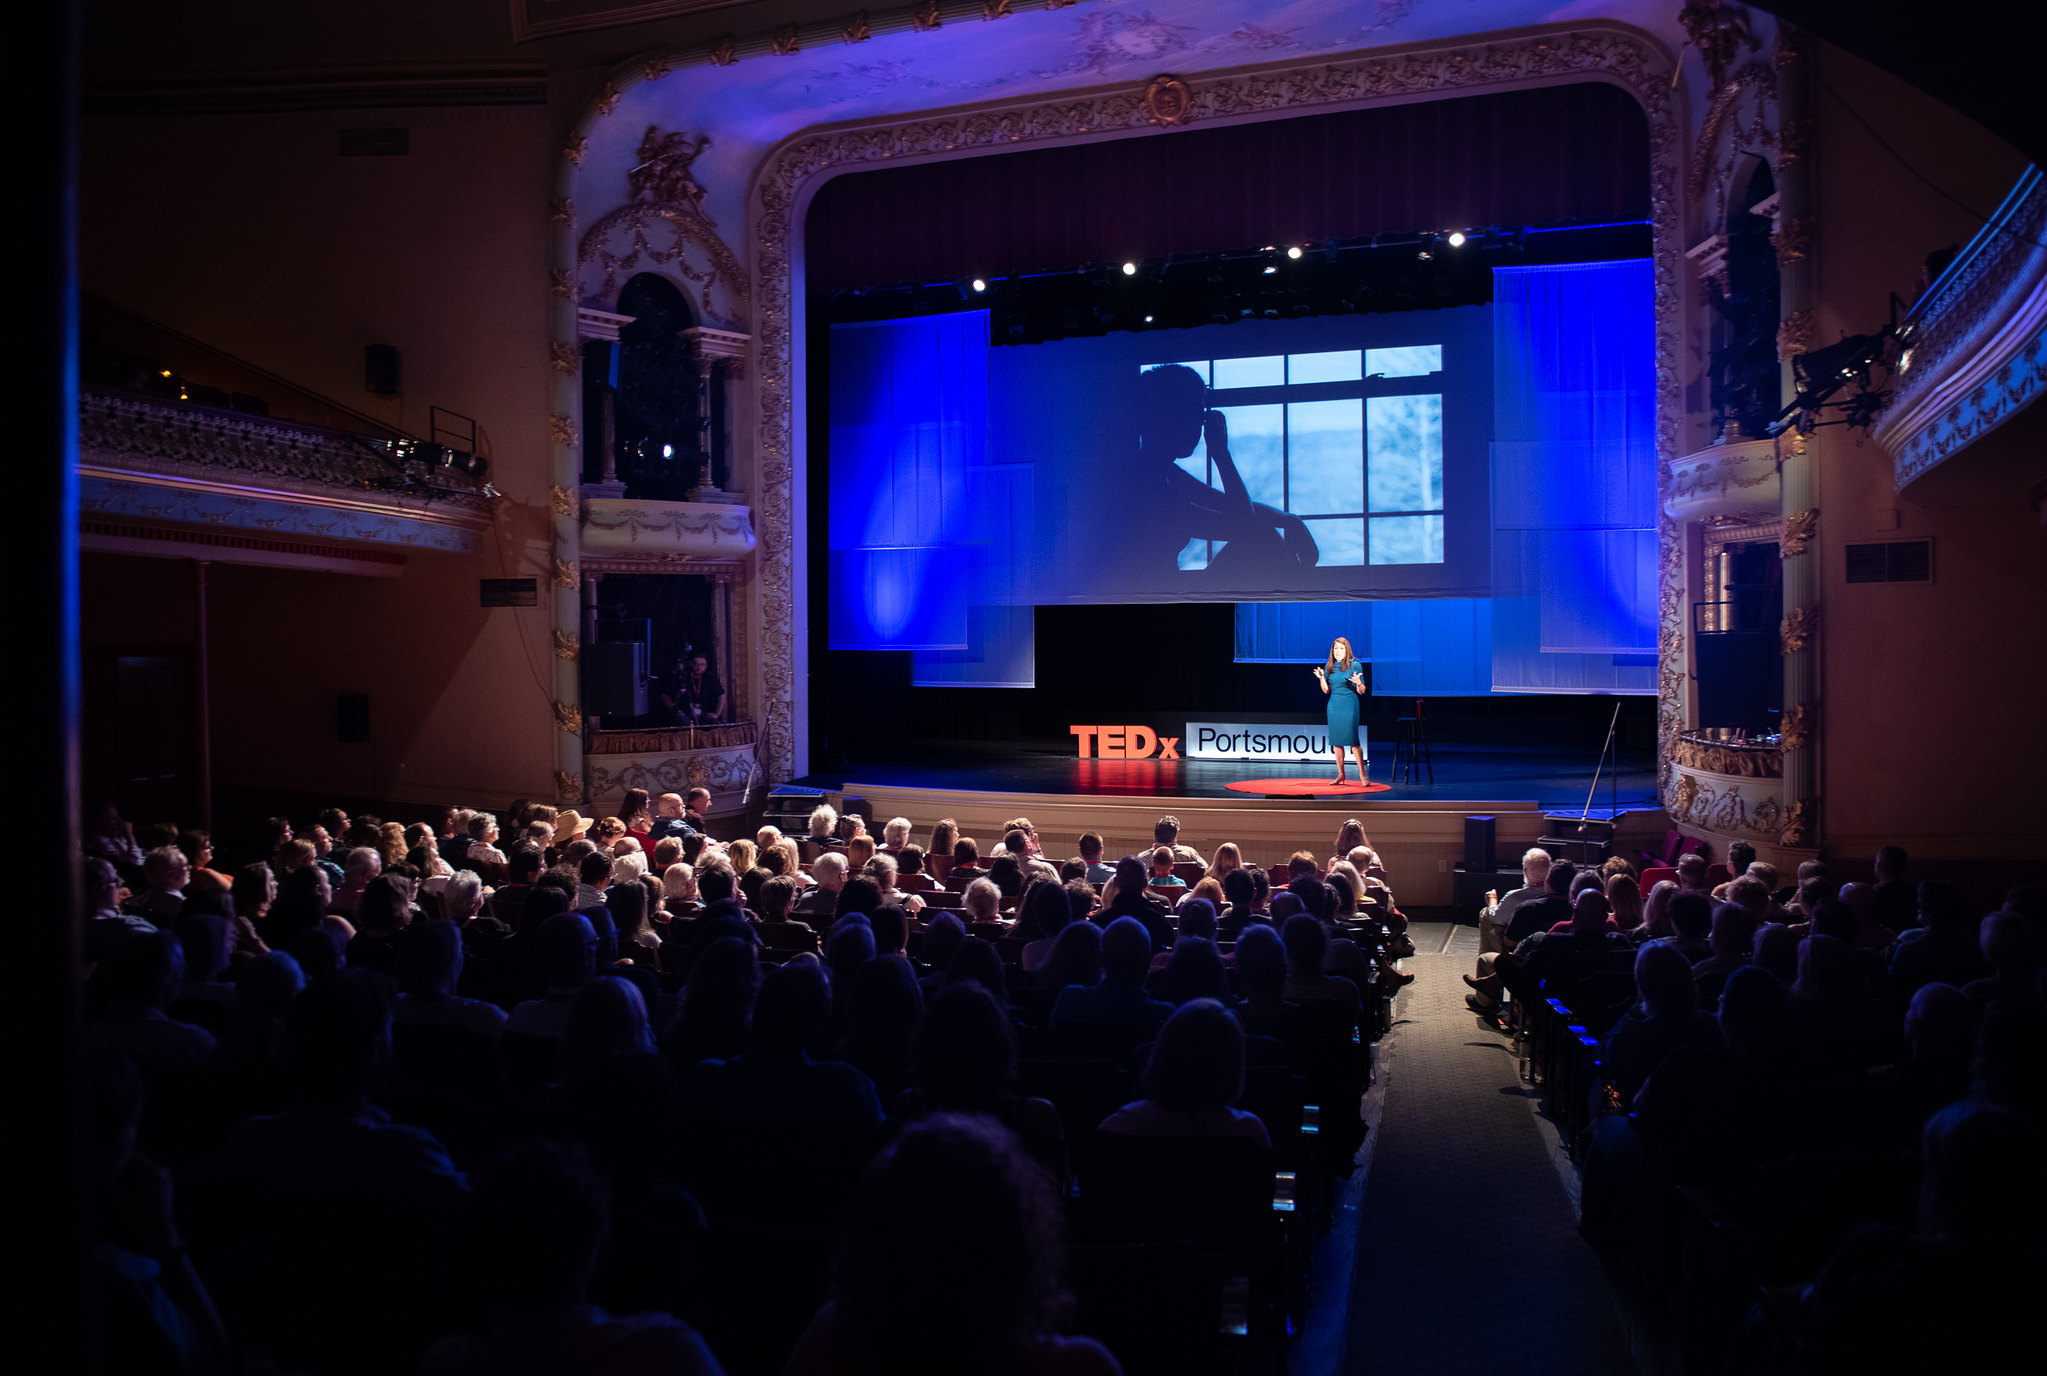 TEDx Portsmouth Large audience with stage